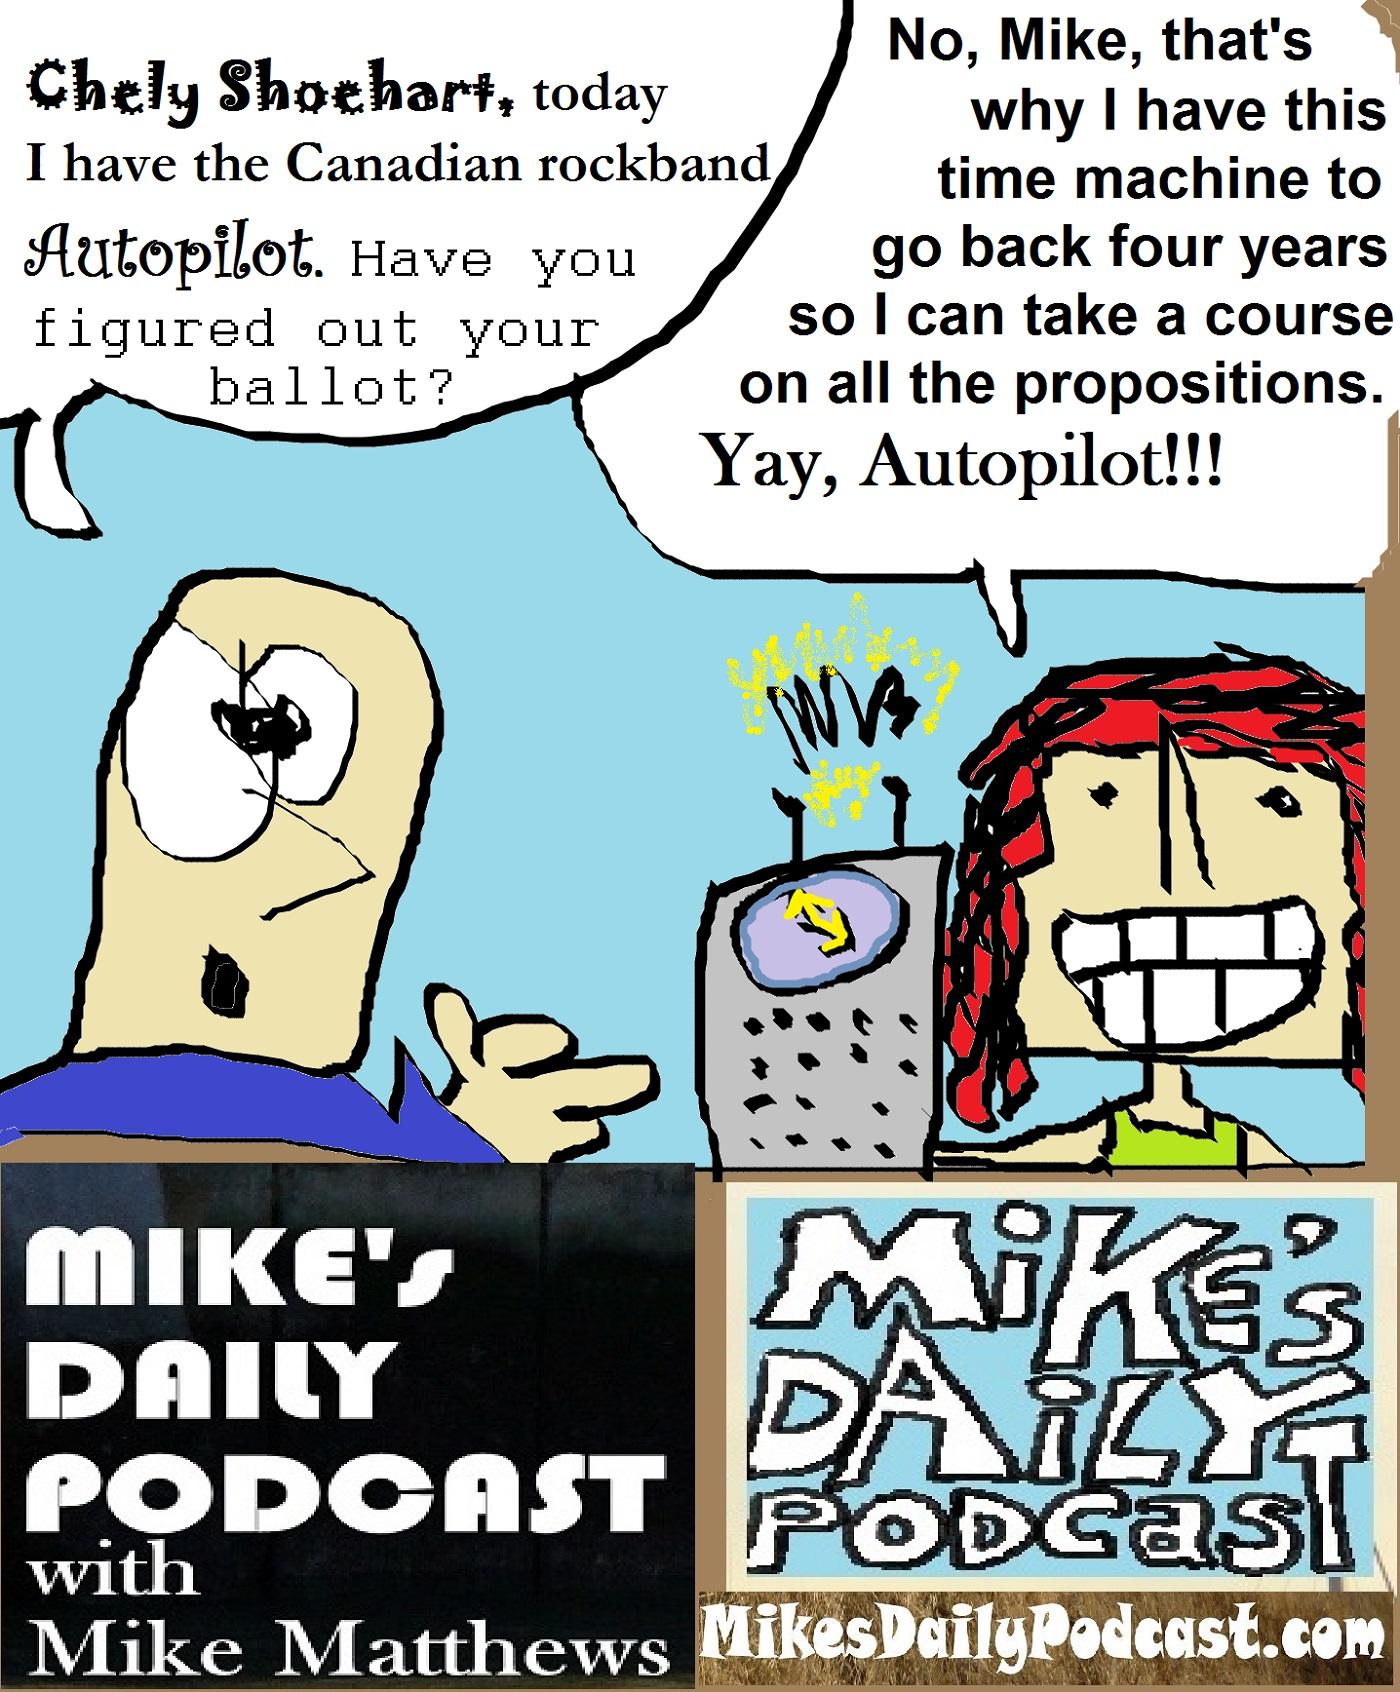 mikes-daily-podcast-1214-autopilot-propositions